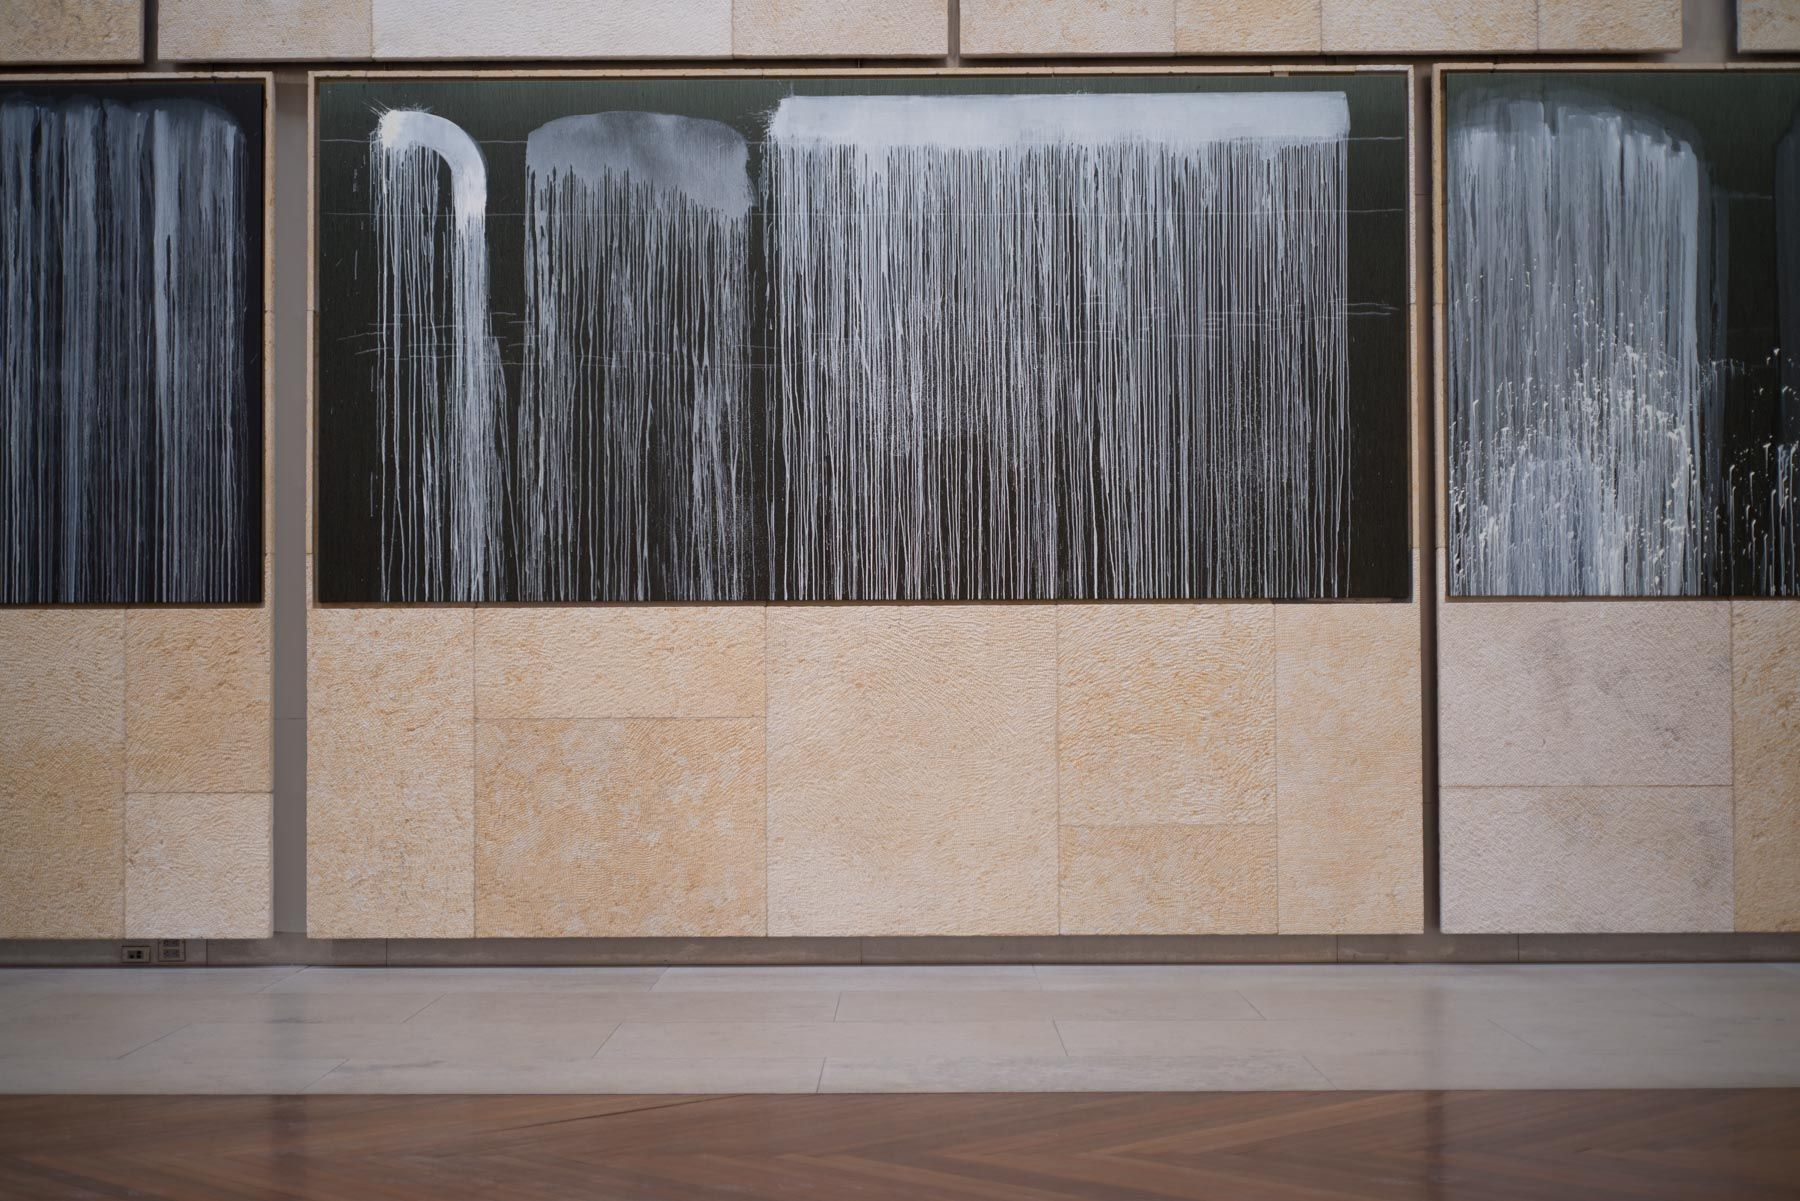 Installation view, Pat Steir Silent Waterfalls: The Barnes Series, The Barnes Foundation, Philadelphia, Pennsylvania, 2019